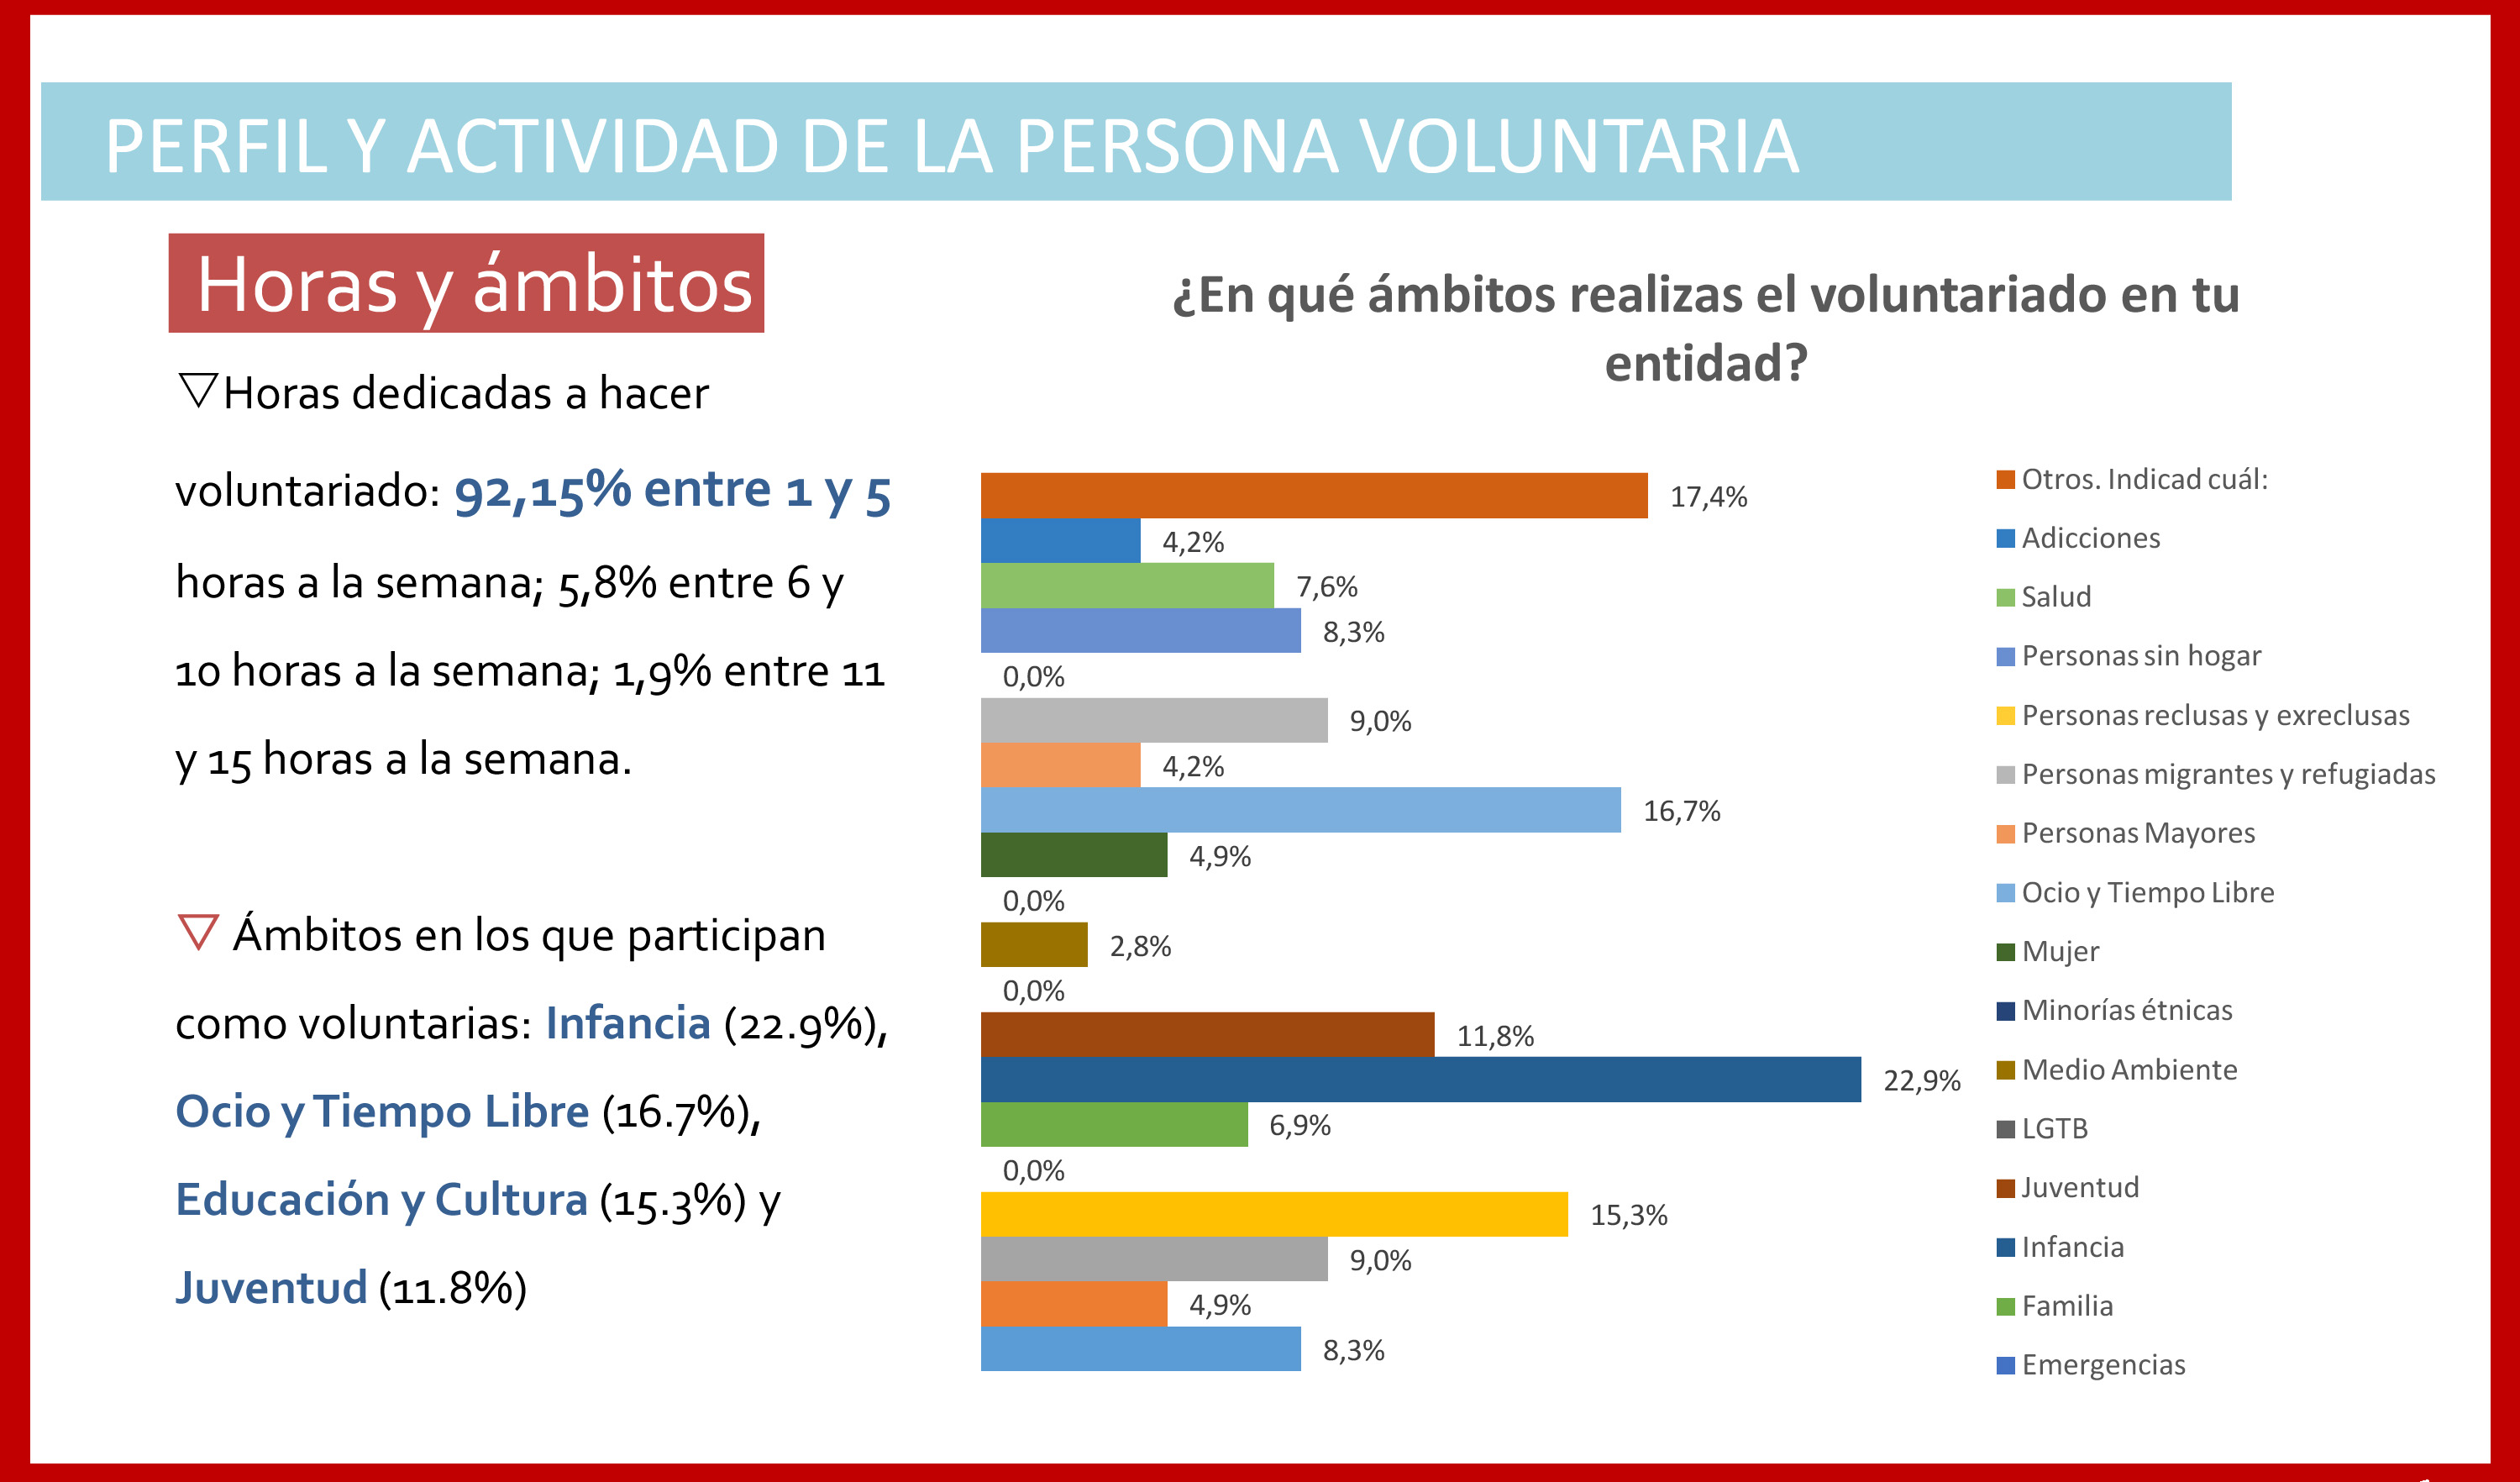 perfil_voluntariado_madrid_persona voluntaria horas y ambitos